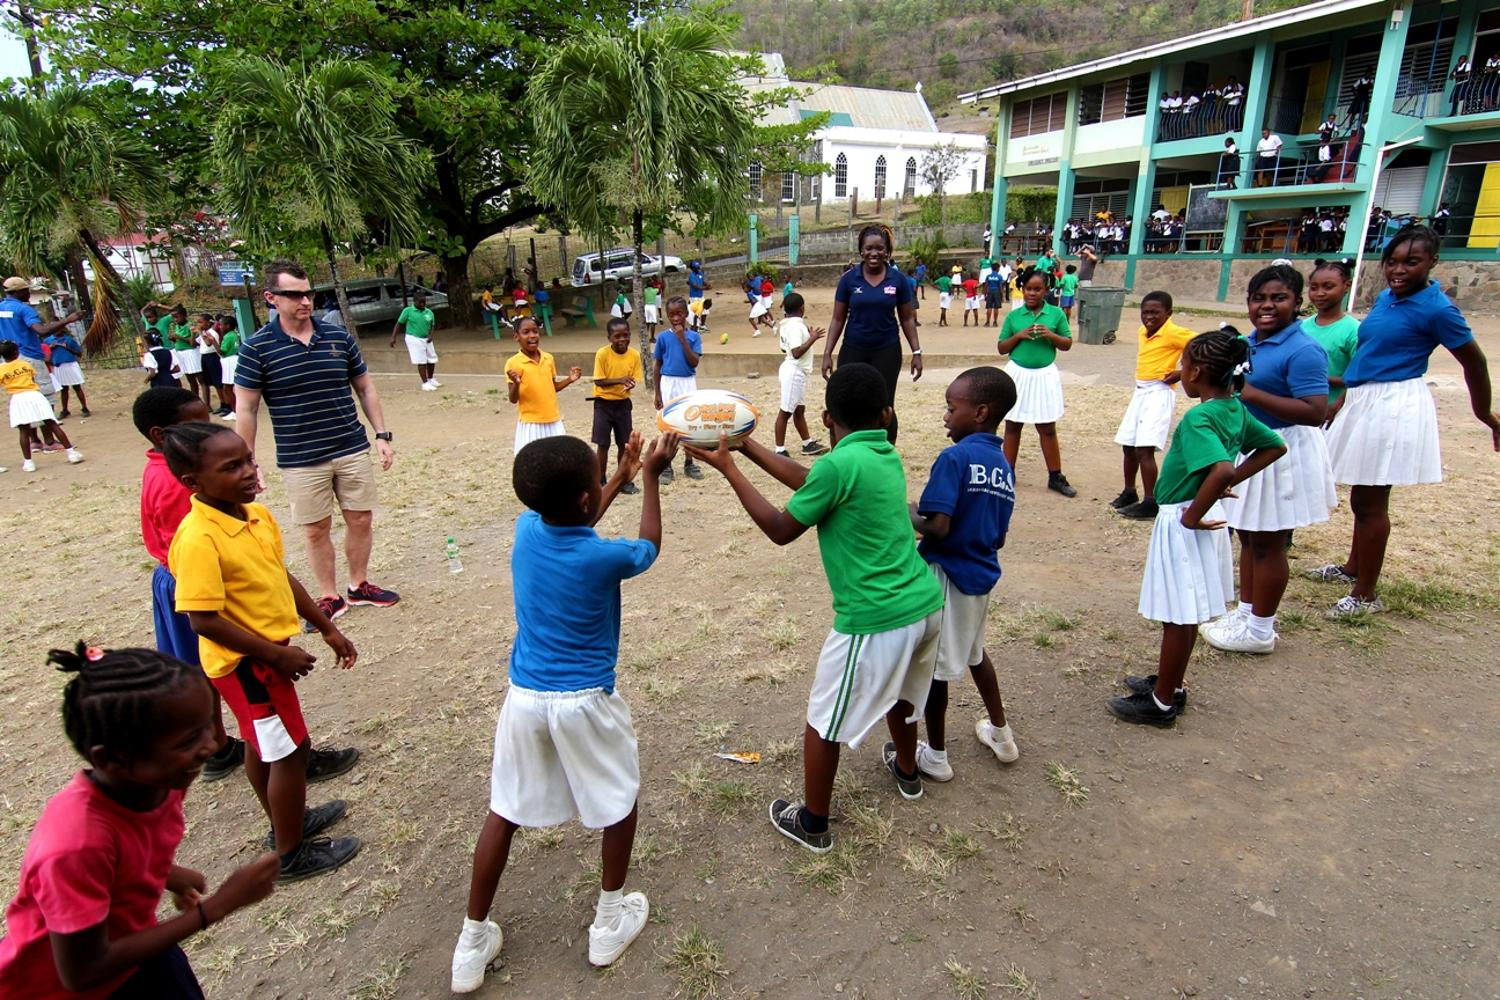 Owens helps to grow the game in the Caribbean